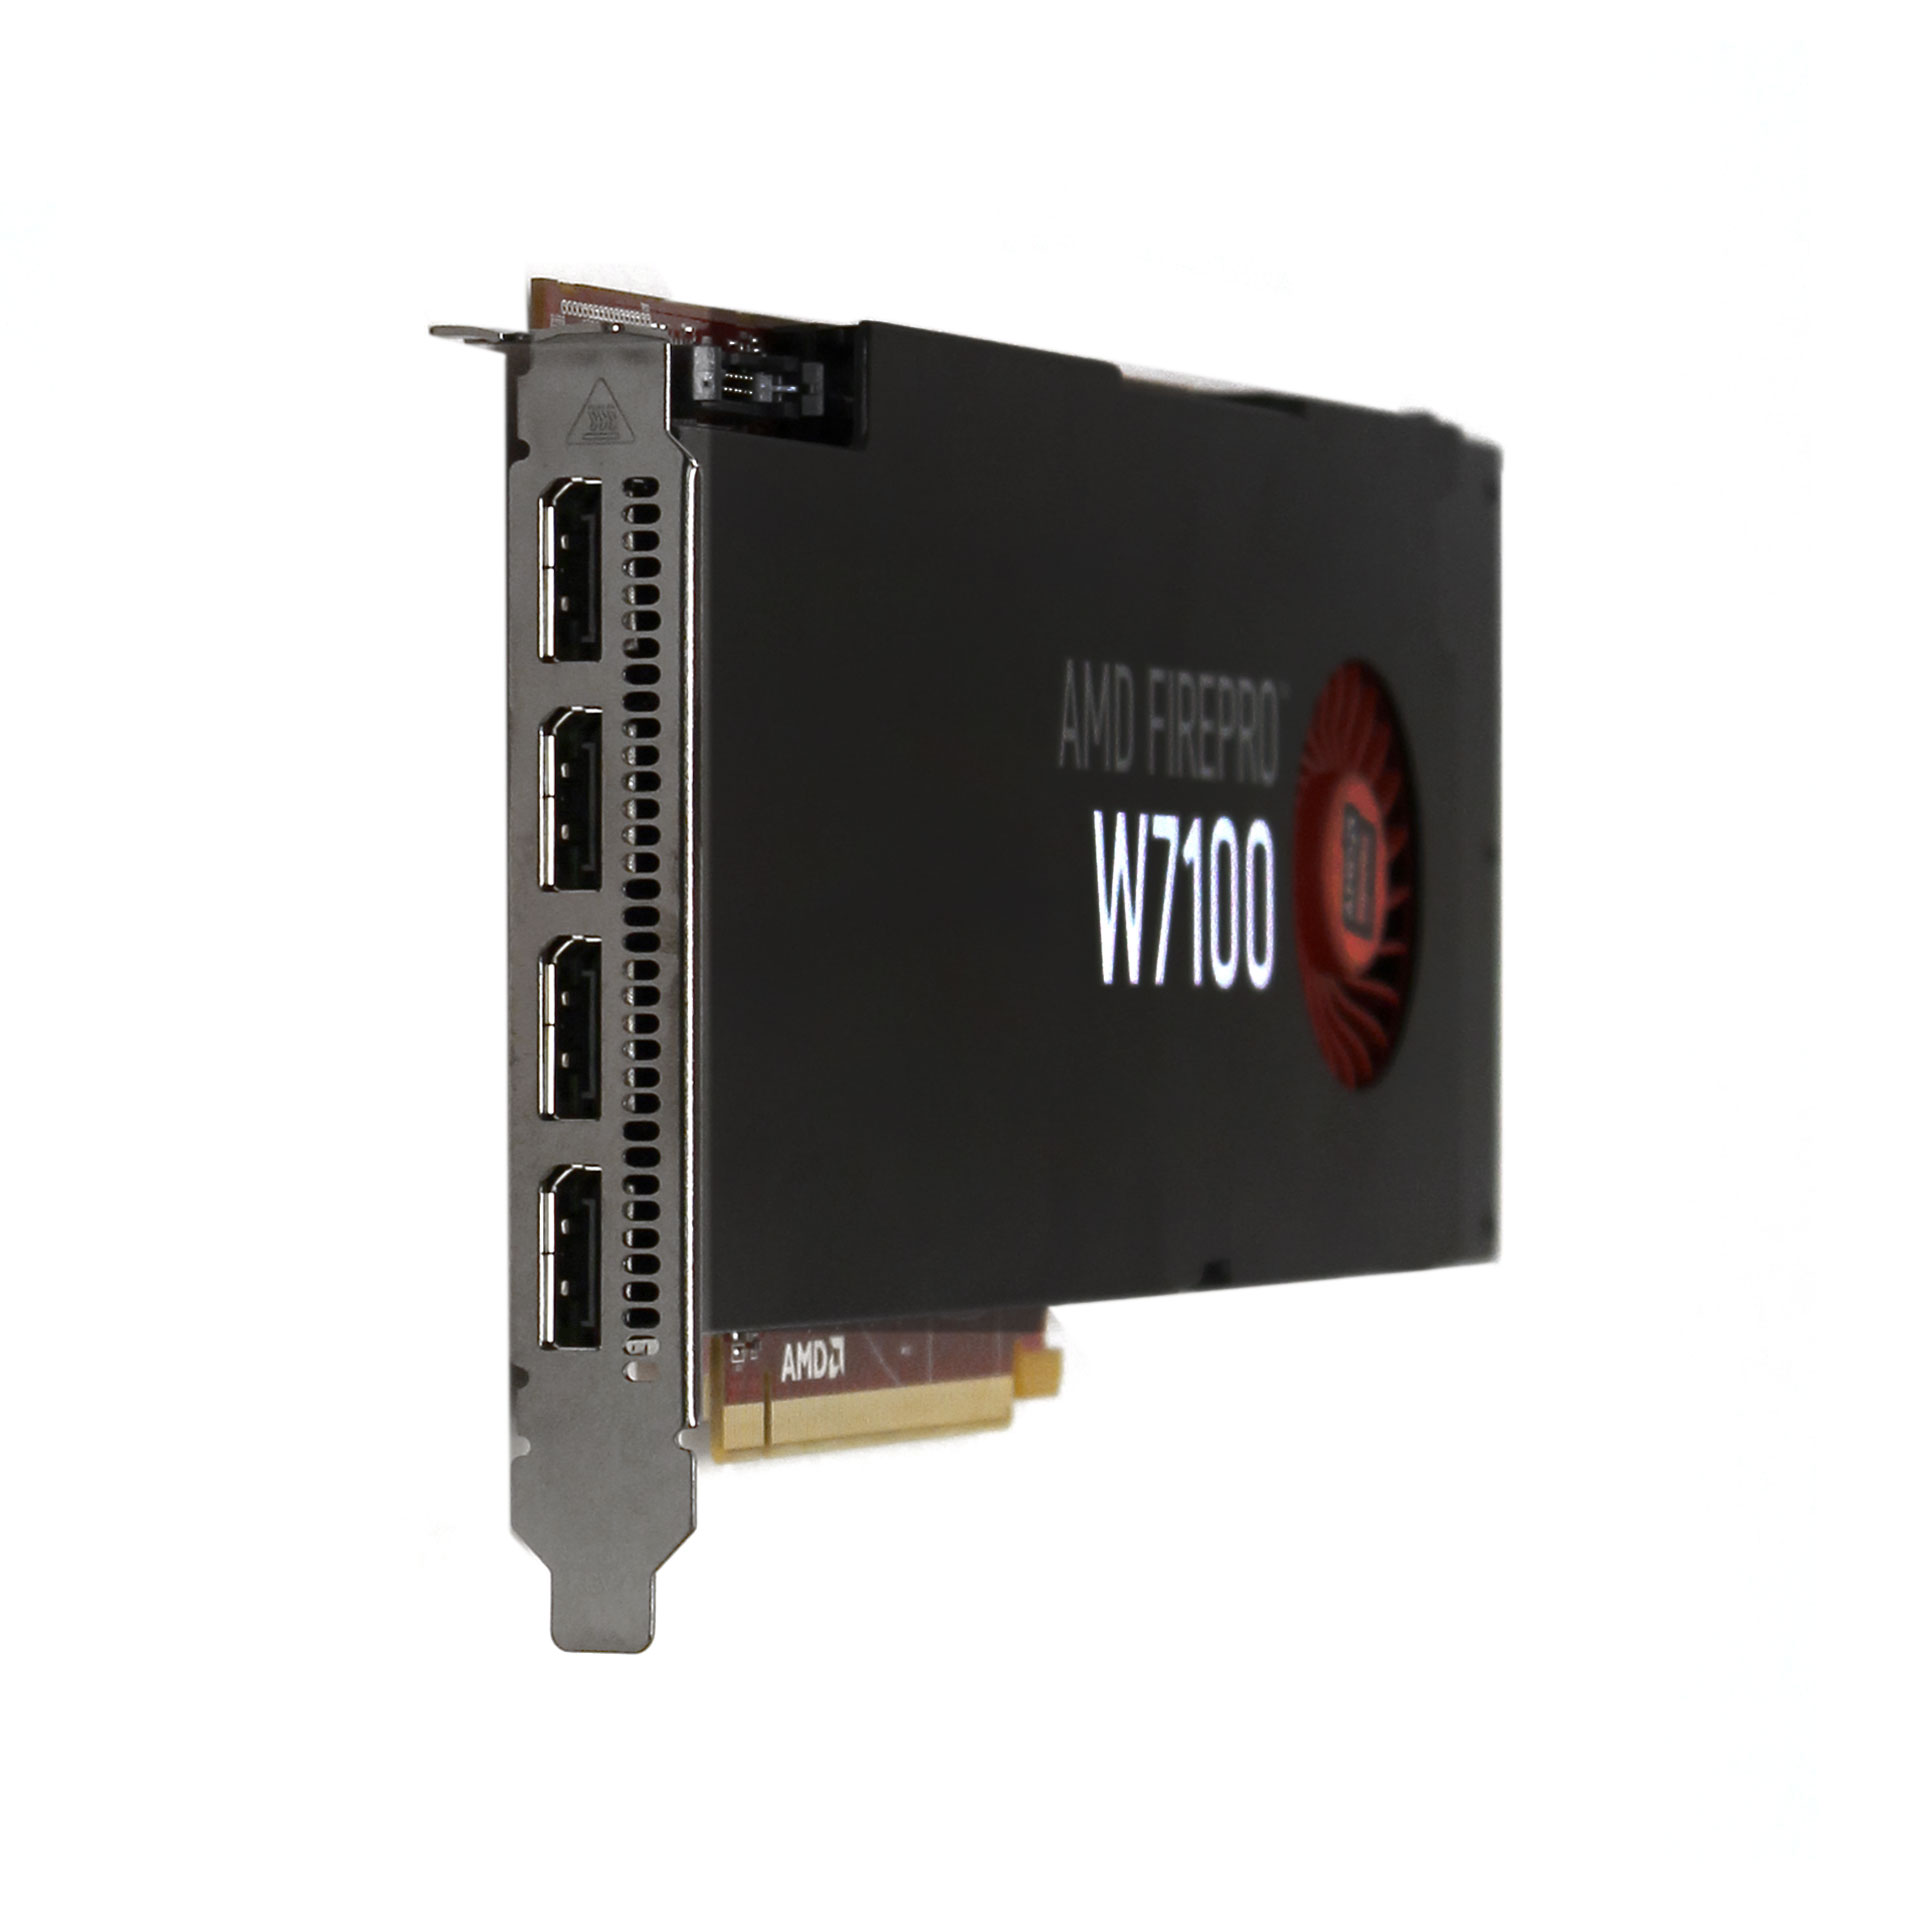 AMD FirePro W7100 8GB GDDR5 PCI-e Video Card 100-505724 ATI